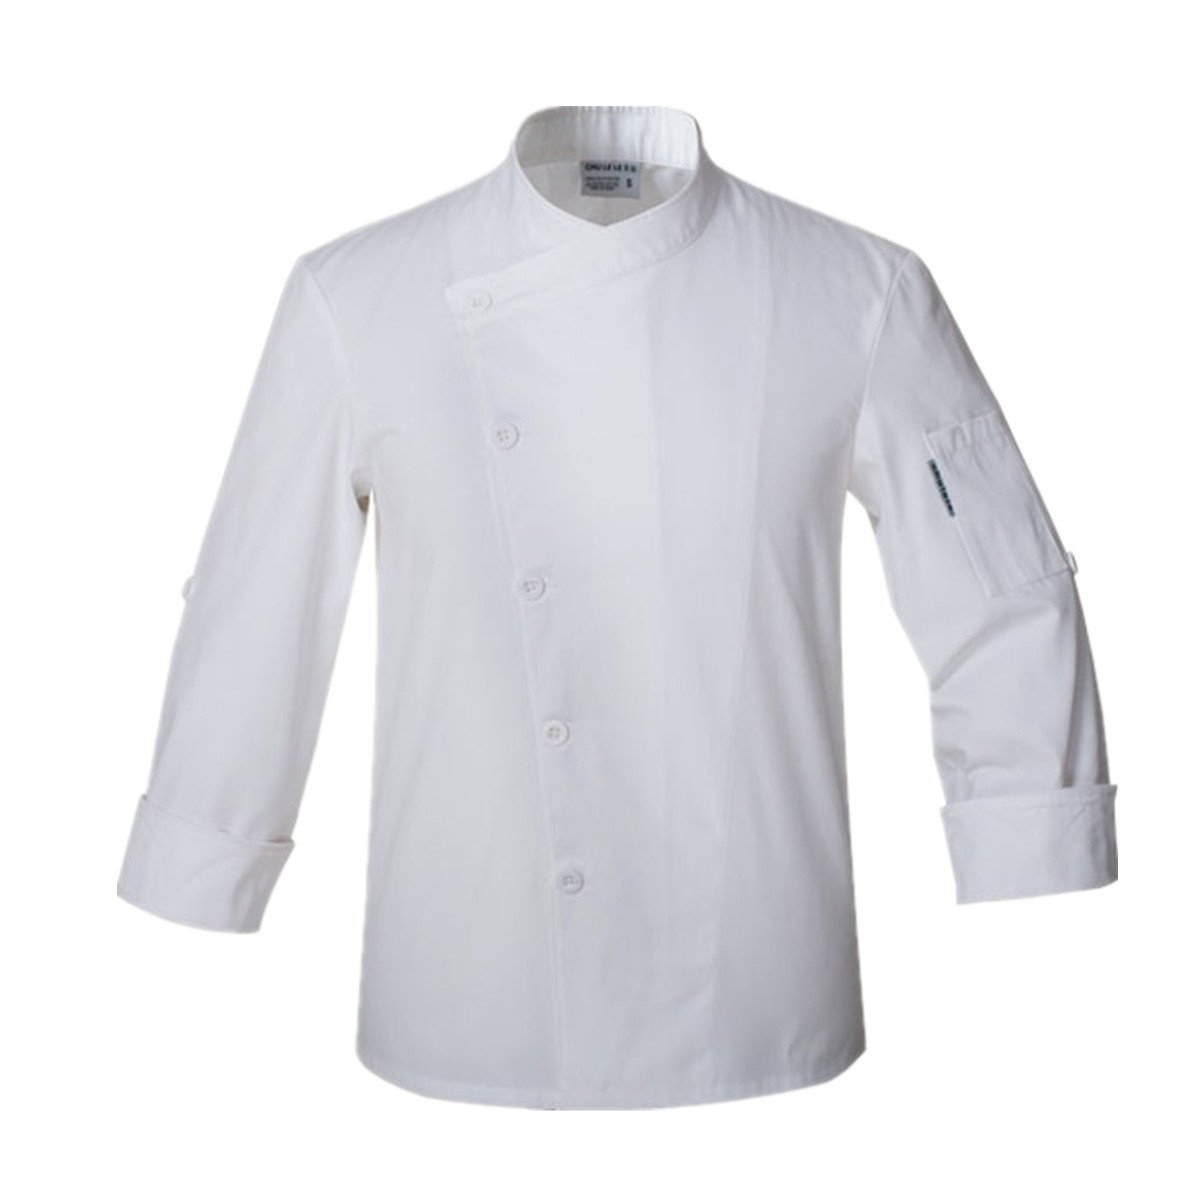 XINFU Hotel Chef's Work Clothes Adjustable Long Sleeve Chef Jacket Chef Uniform Single Breasted